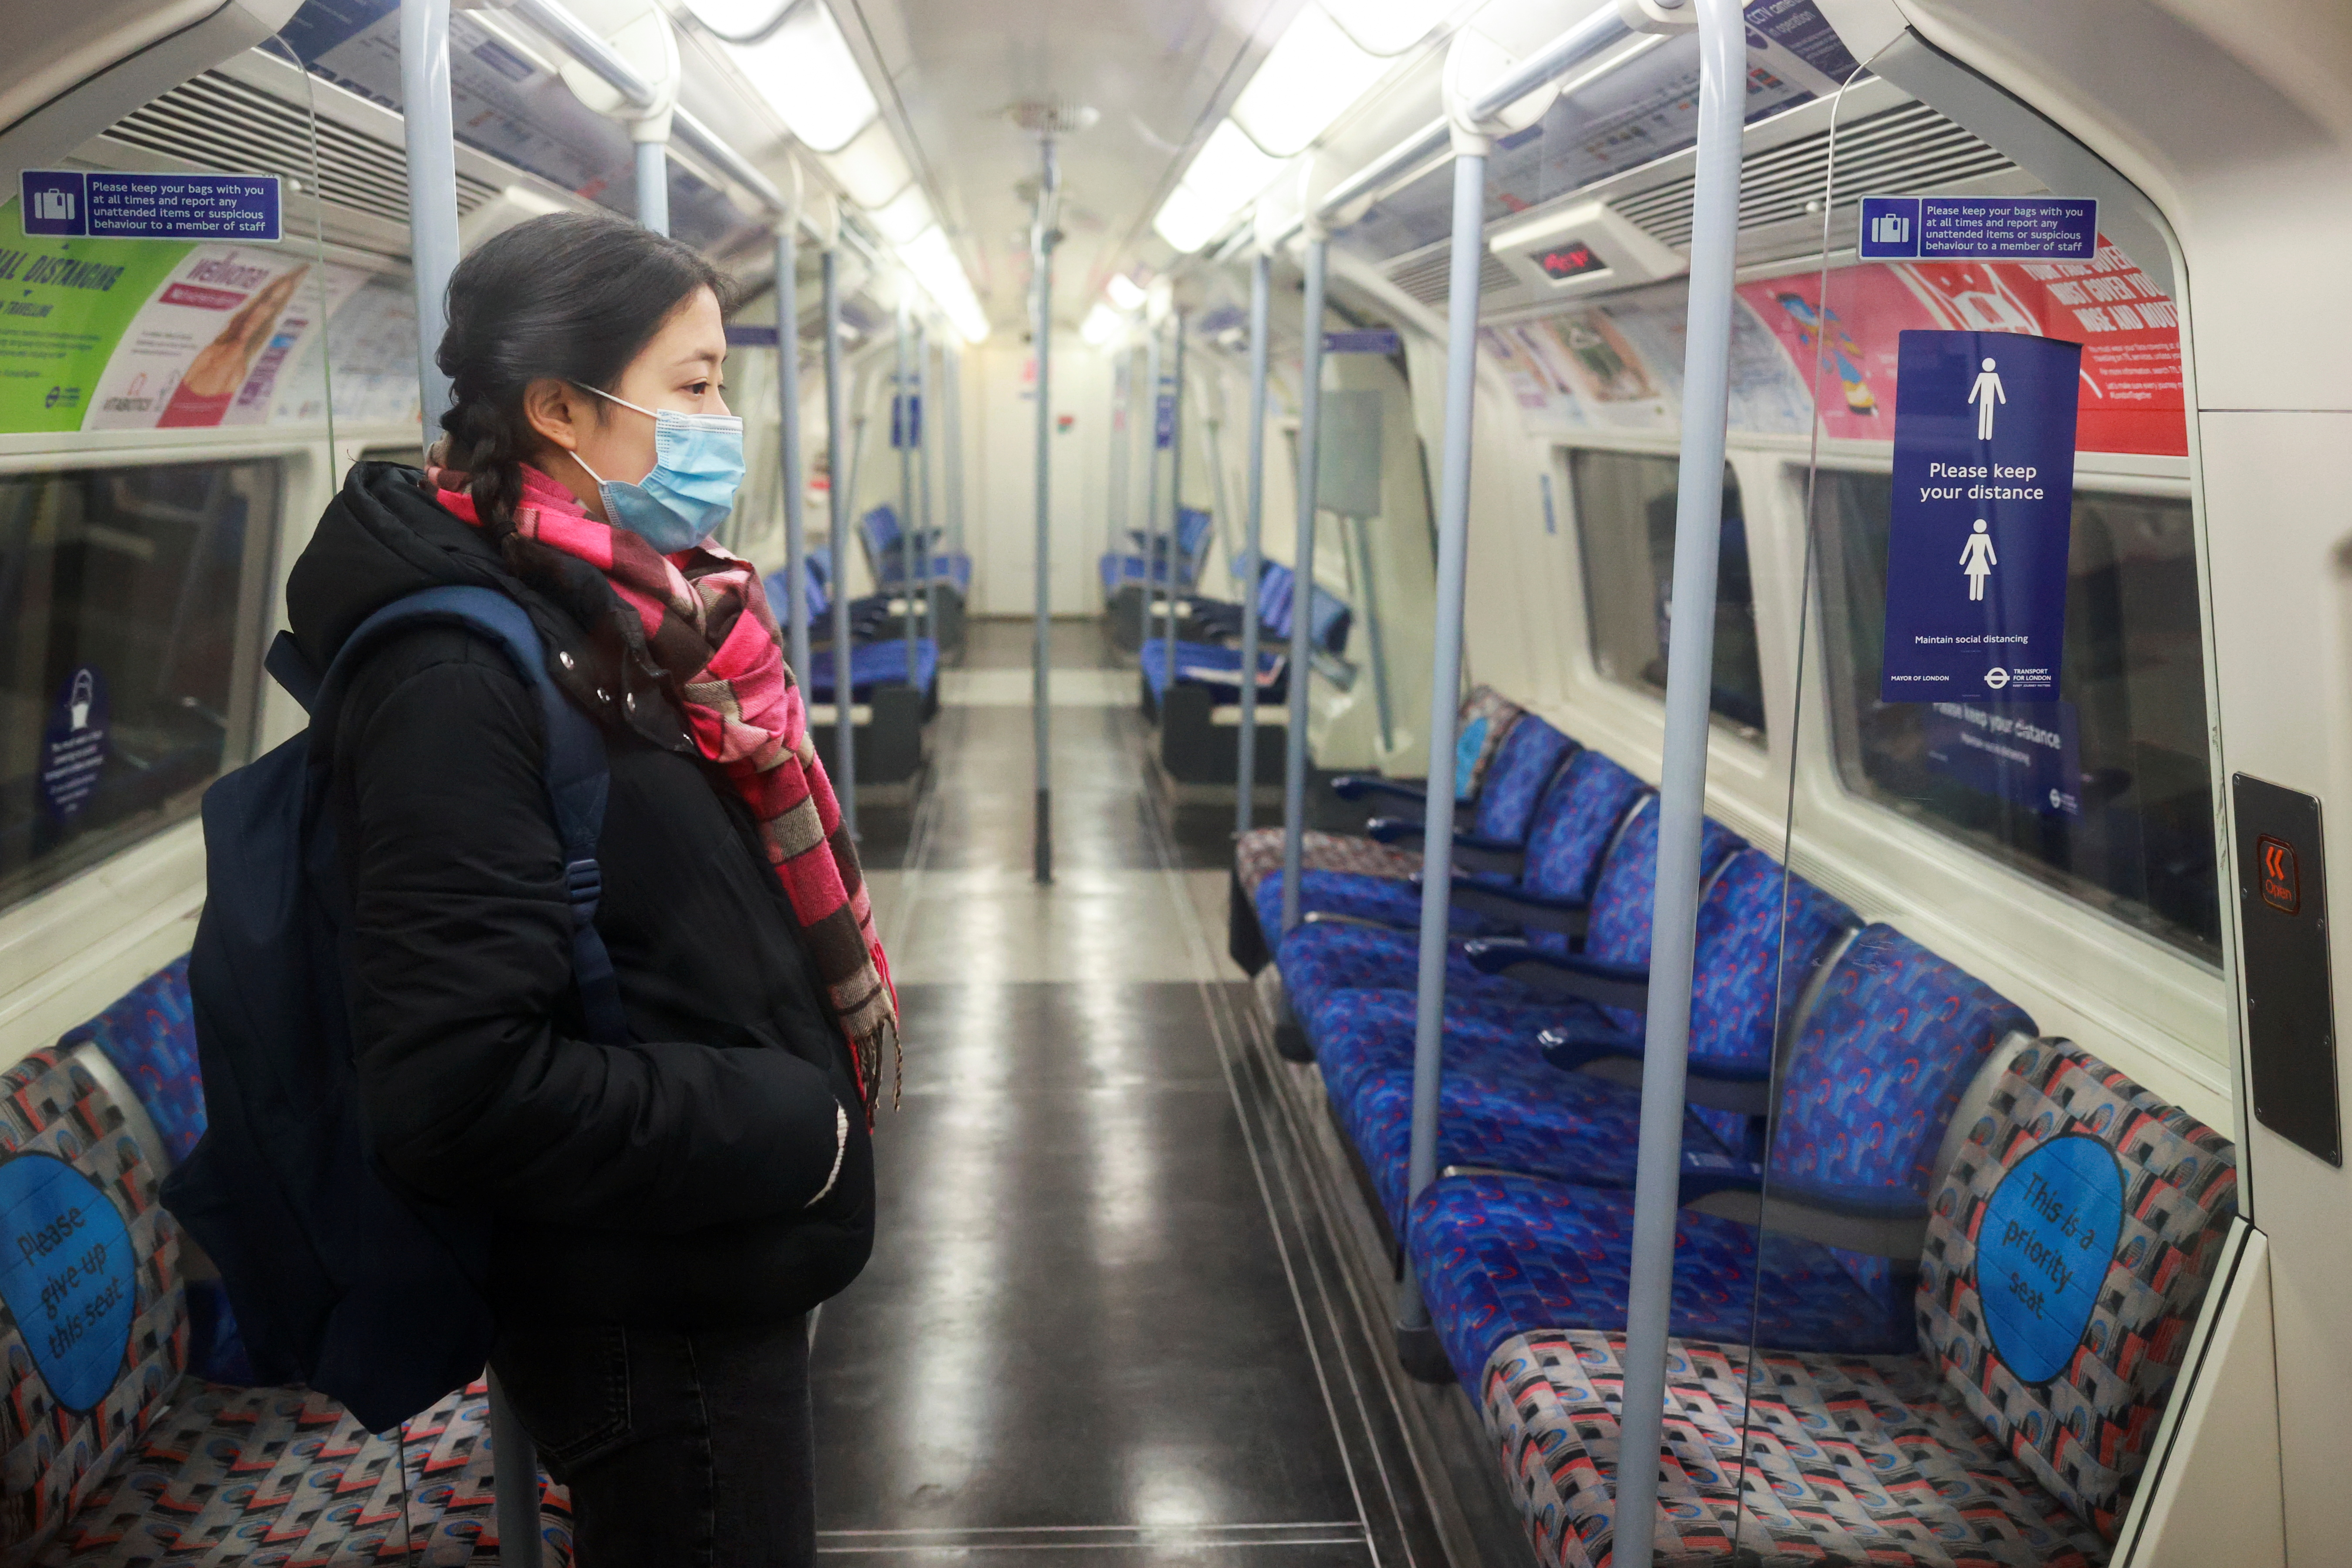 A woman stand inside an almost deserted underground train, amid the coronavirus disease (COVID-19) outbreak, in London, Britain, January 5, 2021. REUTERS/Hannah McKay